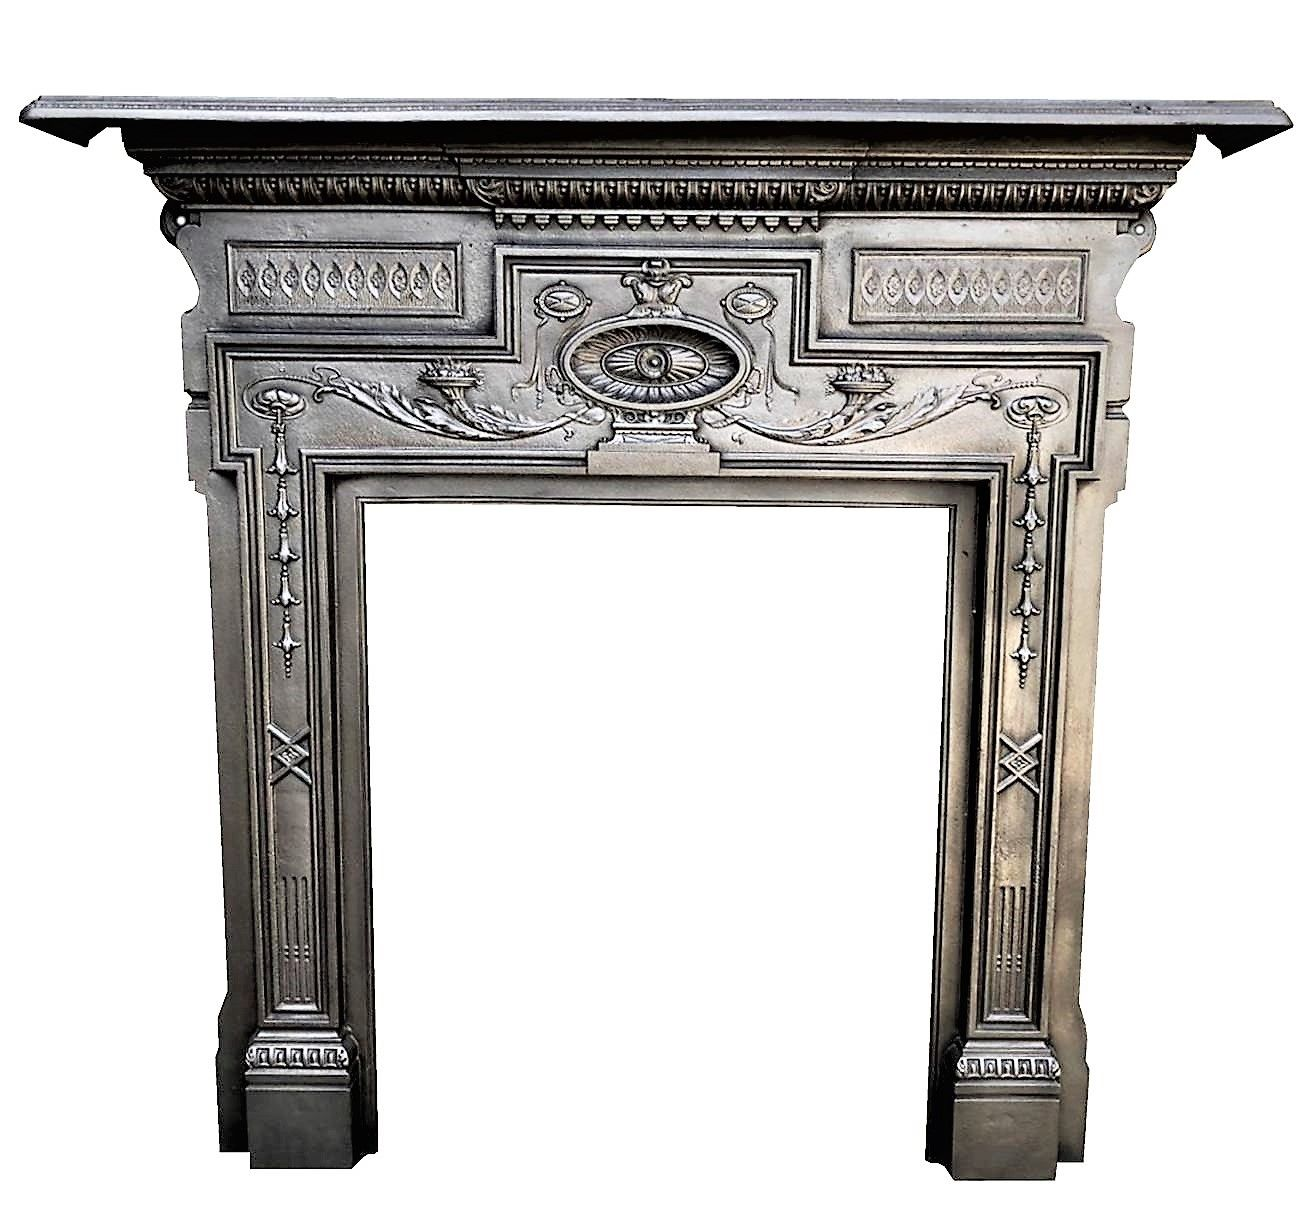 A Stunning Semi Burnished Victorian Cast Iron Fireplace Or Stove Surround Victorian In 2020 Antique Fireplace Surround Antique Fireplace Mantels